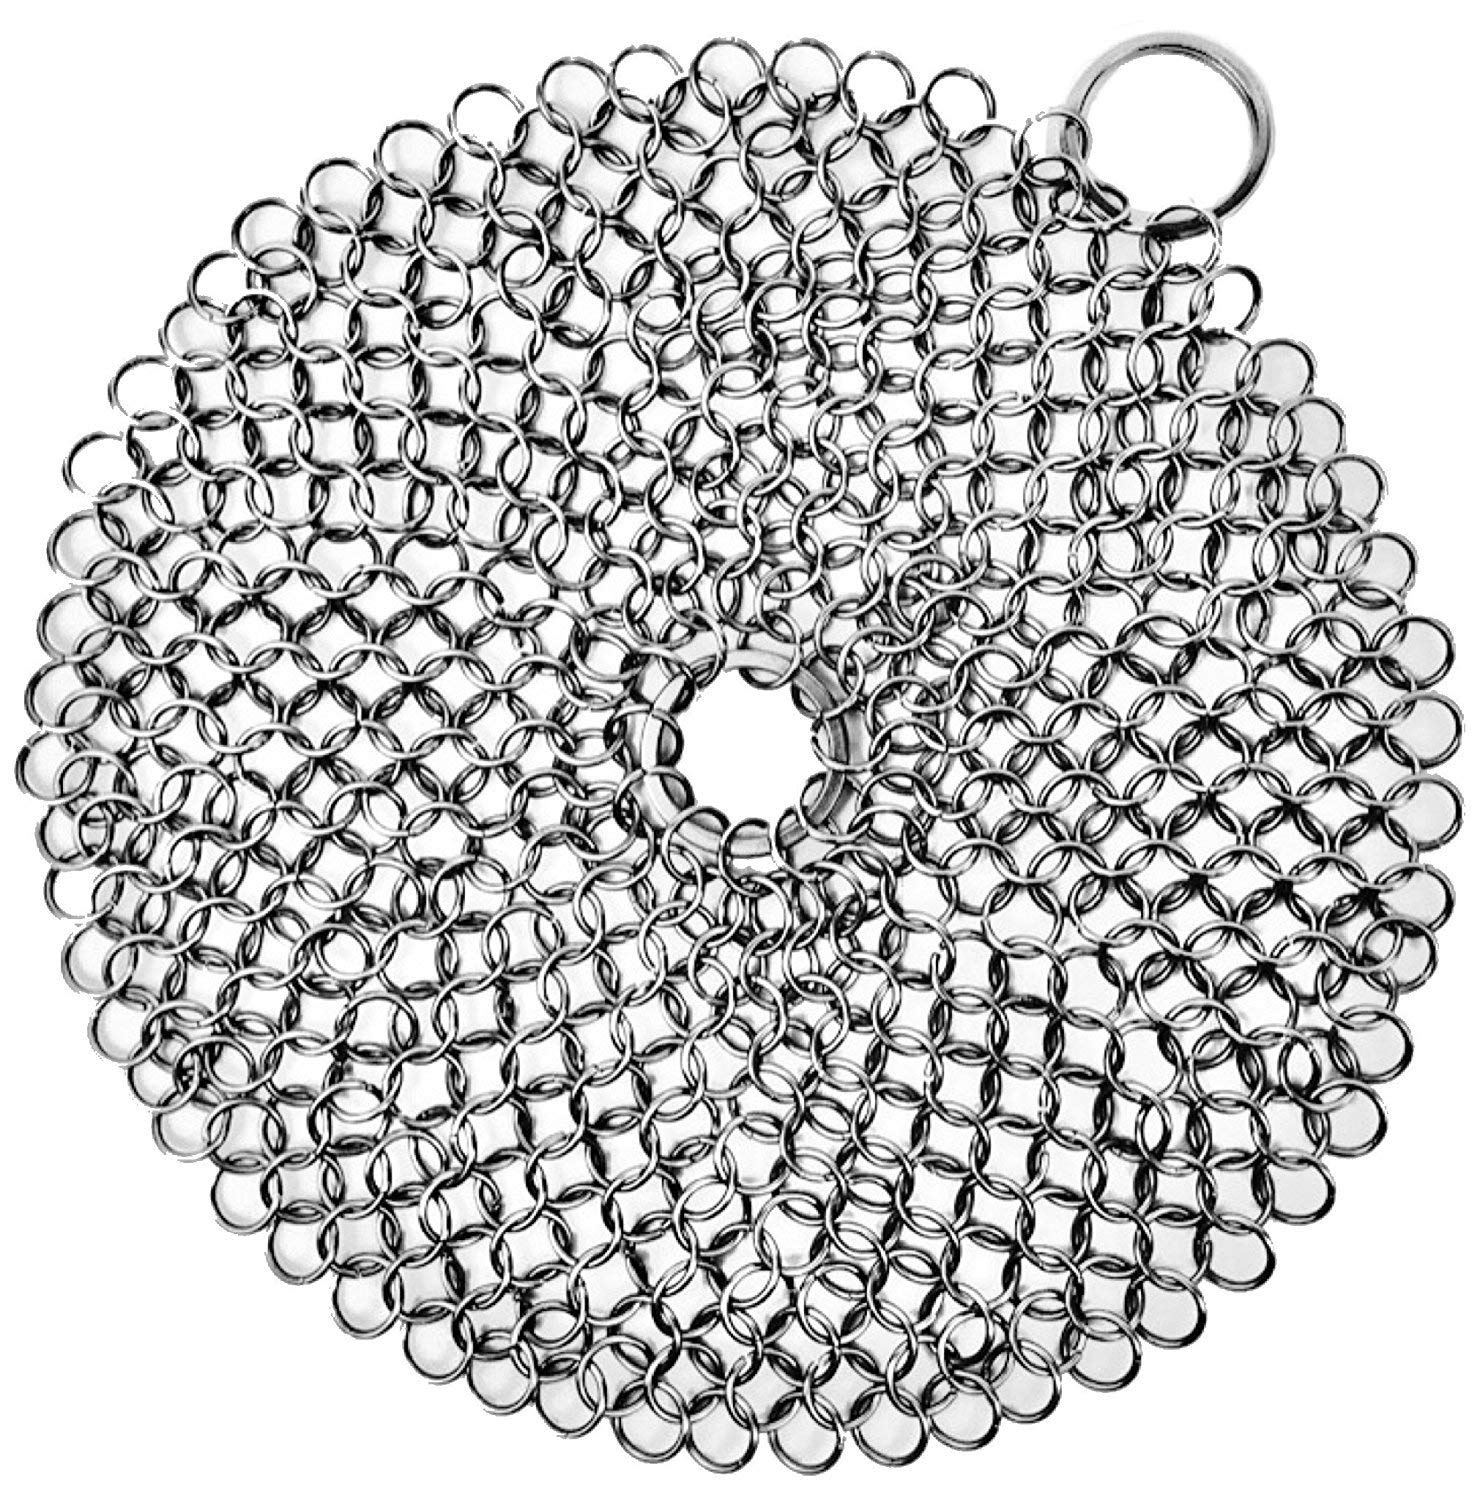 """Cast Iron Cleaner, Stainless Steel Chainmail Scrubber - Cookware Cleaner For Skillet, Wok, Pot, Pan, Grill Scraper with Corner Ring 